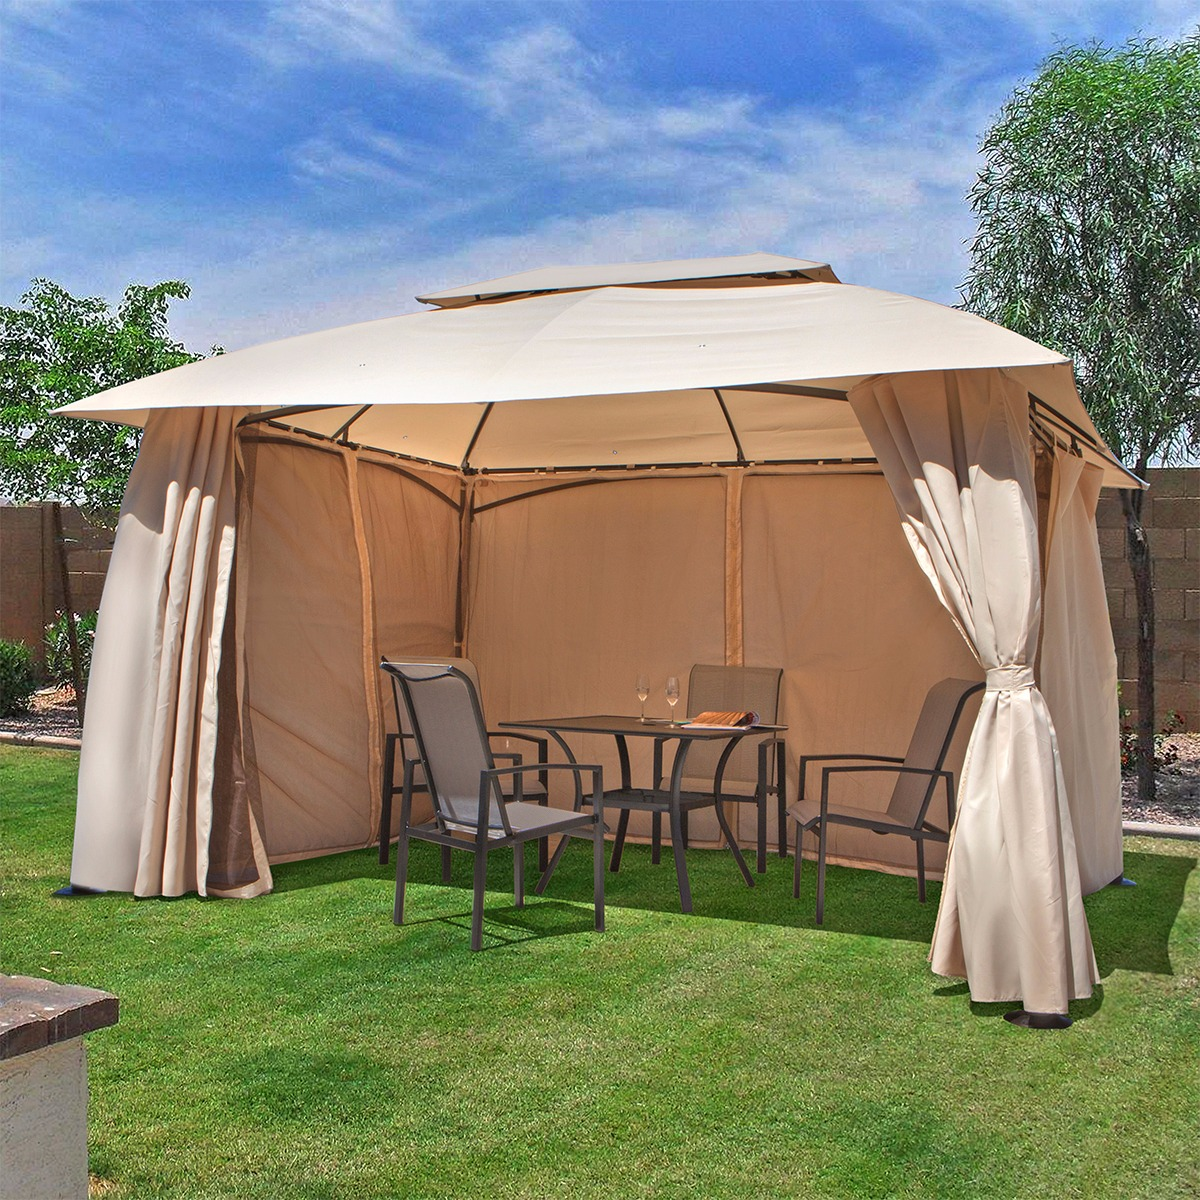 gazebo tent outdoor home 10u0027 x 13u0027 backyard garden awnings patio gazebo canopy tent TZDQHYF